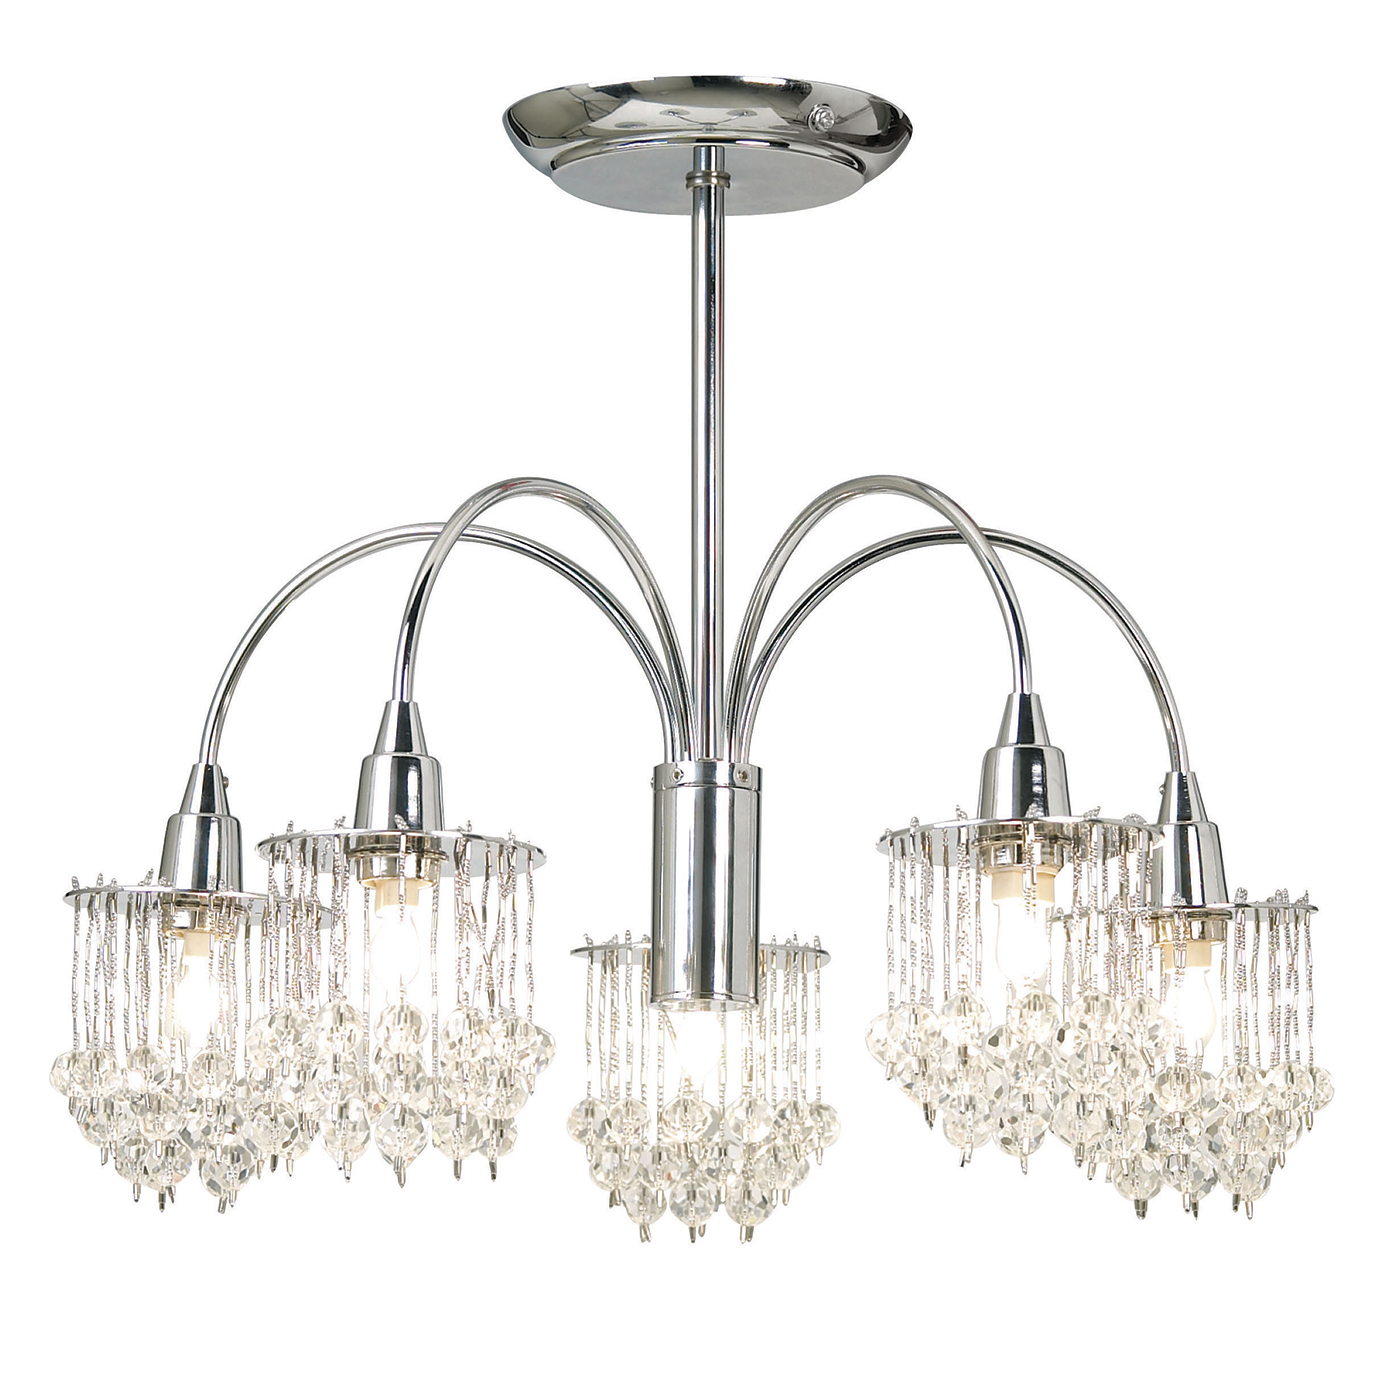 Endon Milieu ceiling light 5x 33W Chrome effect & clear faceted glass beads Thumbnail 1